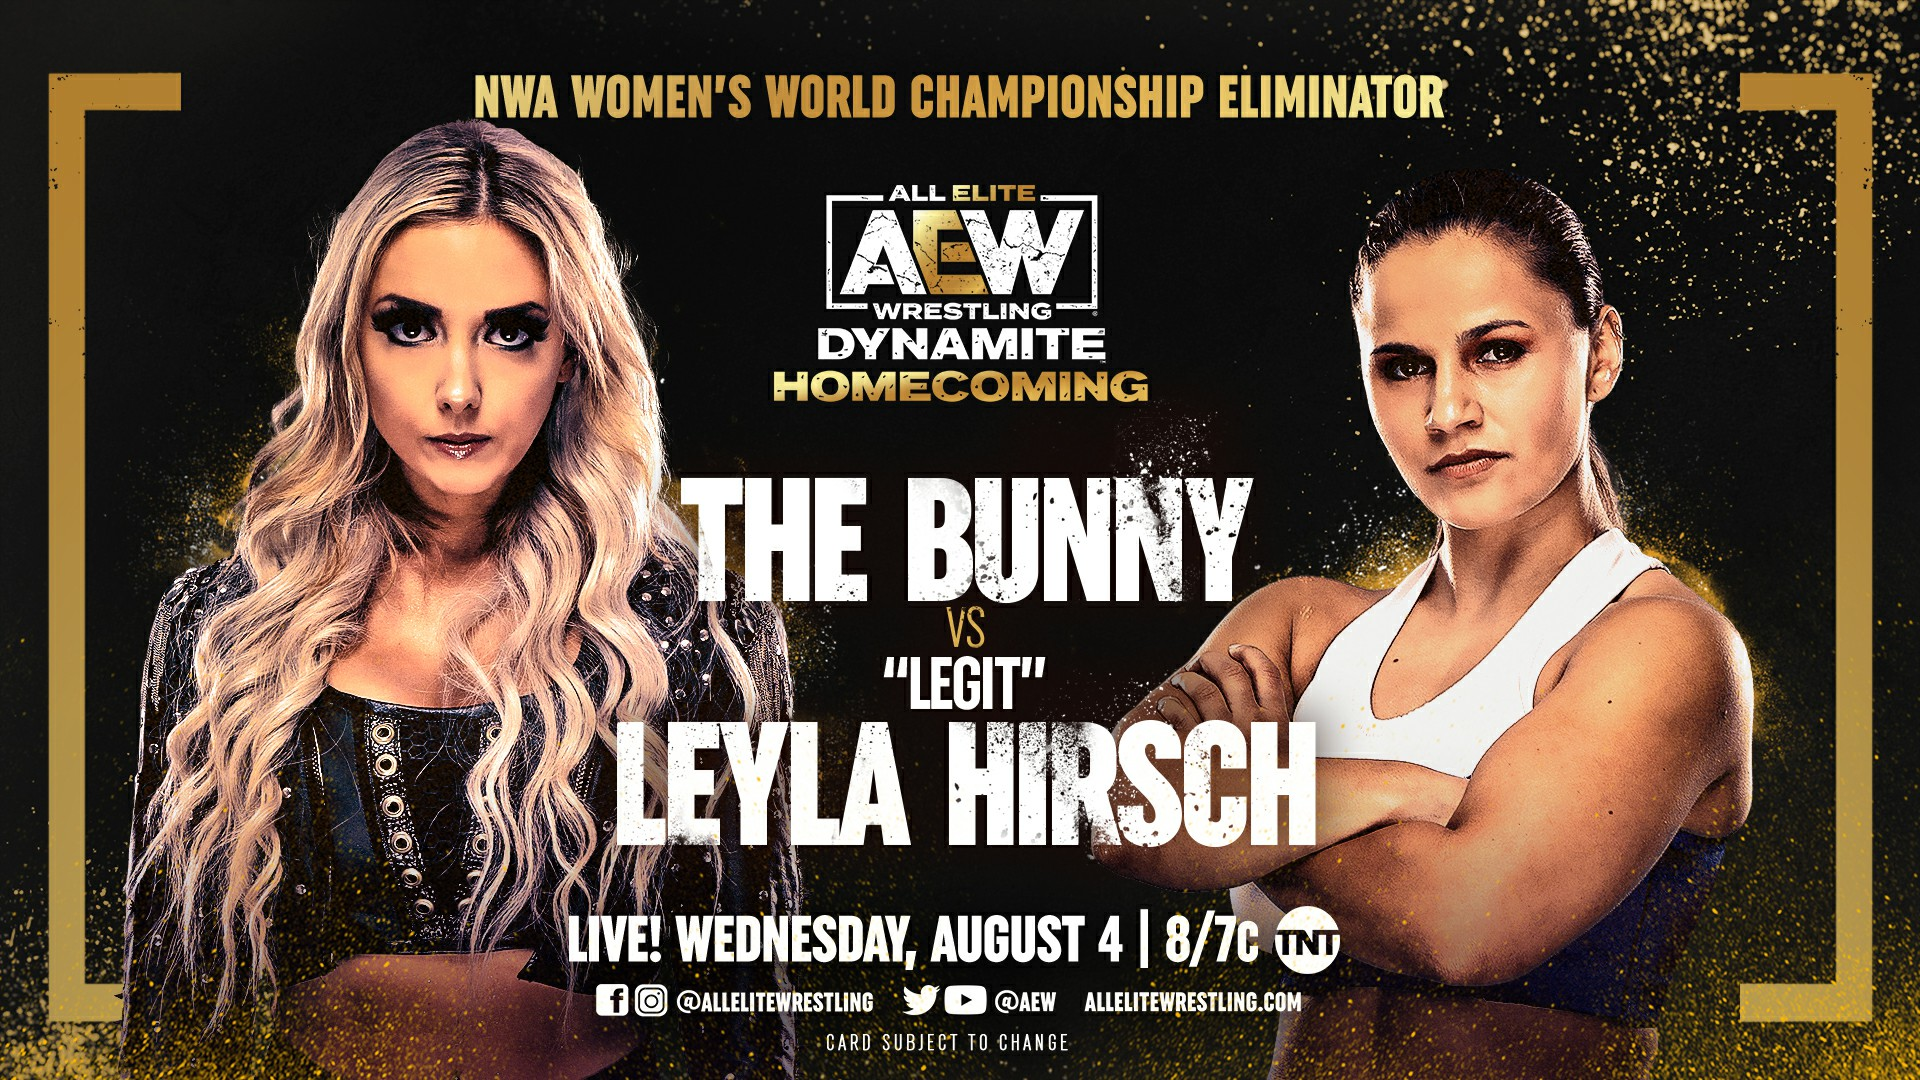 Winner Of Leyla Hirsch Vs. The Bunny To Get NWA Women's Title Shot At NWA Empowerr